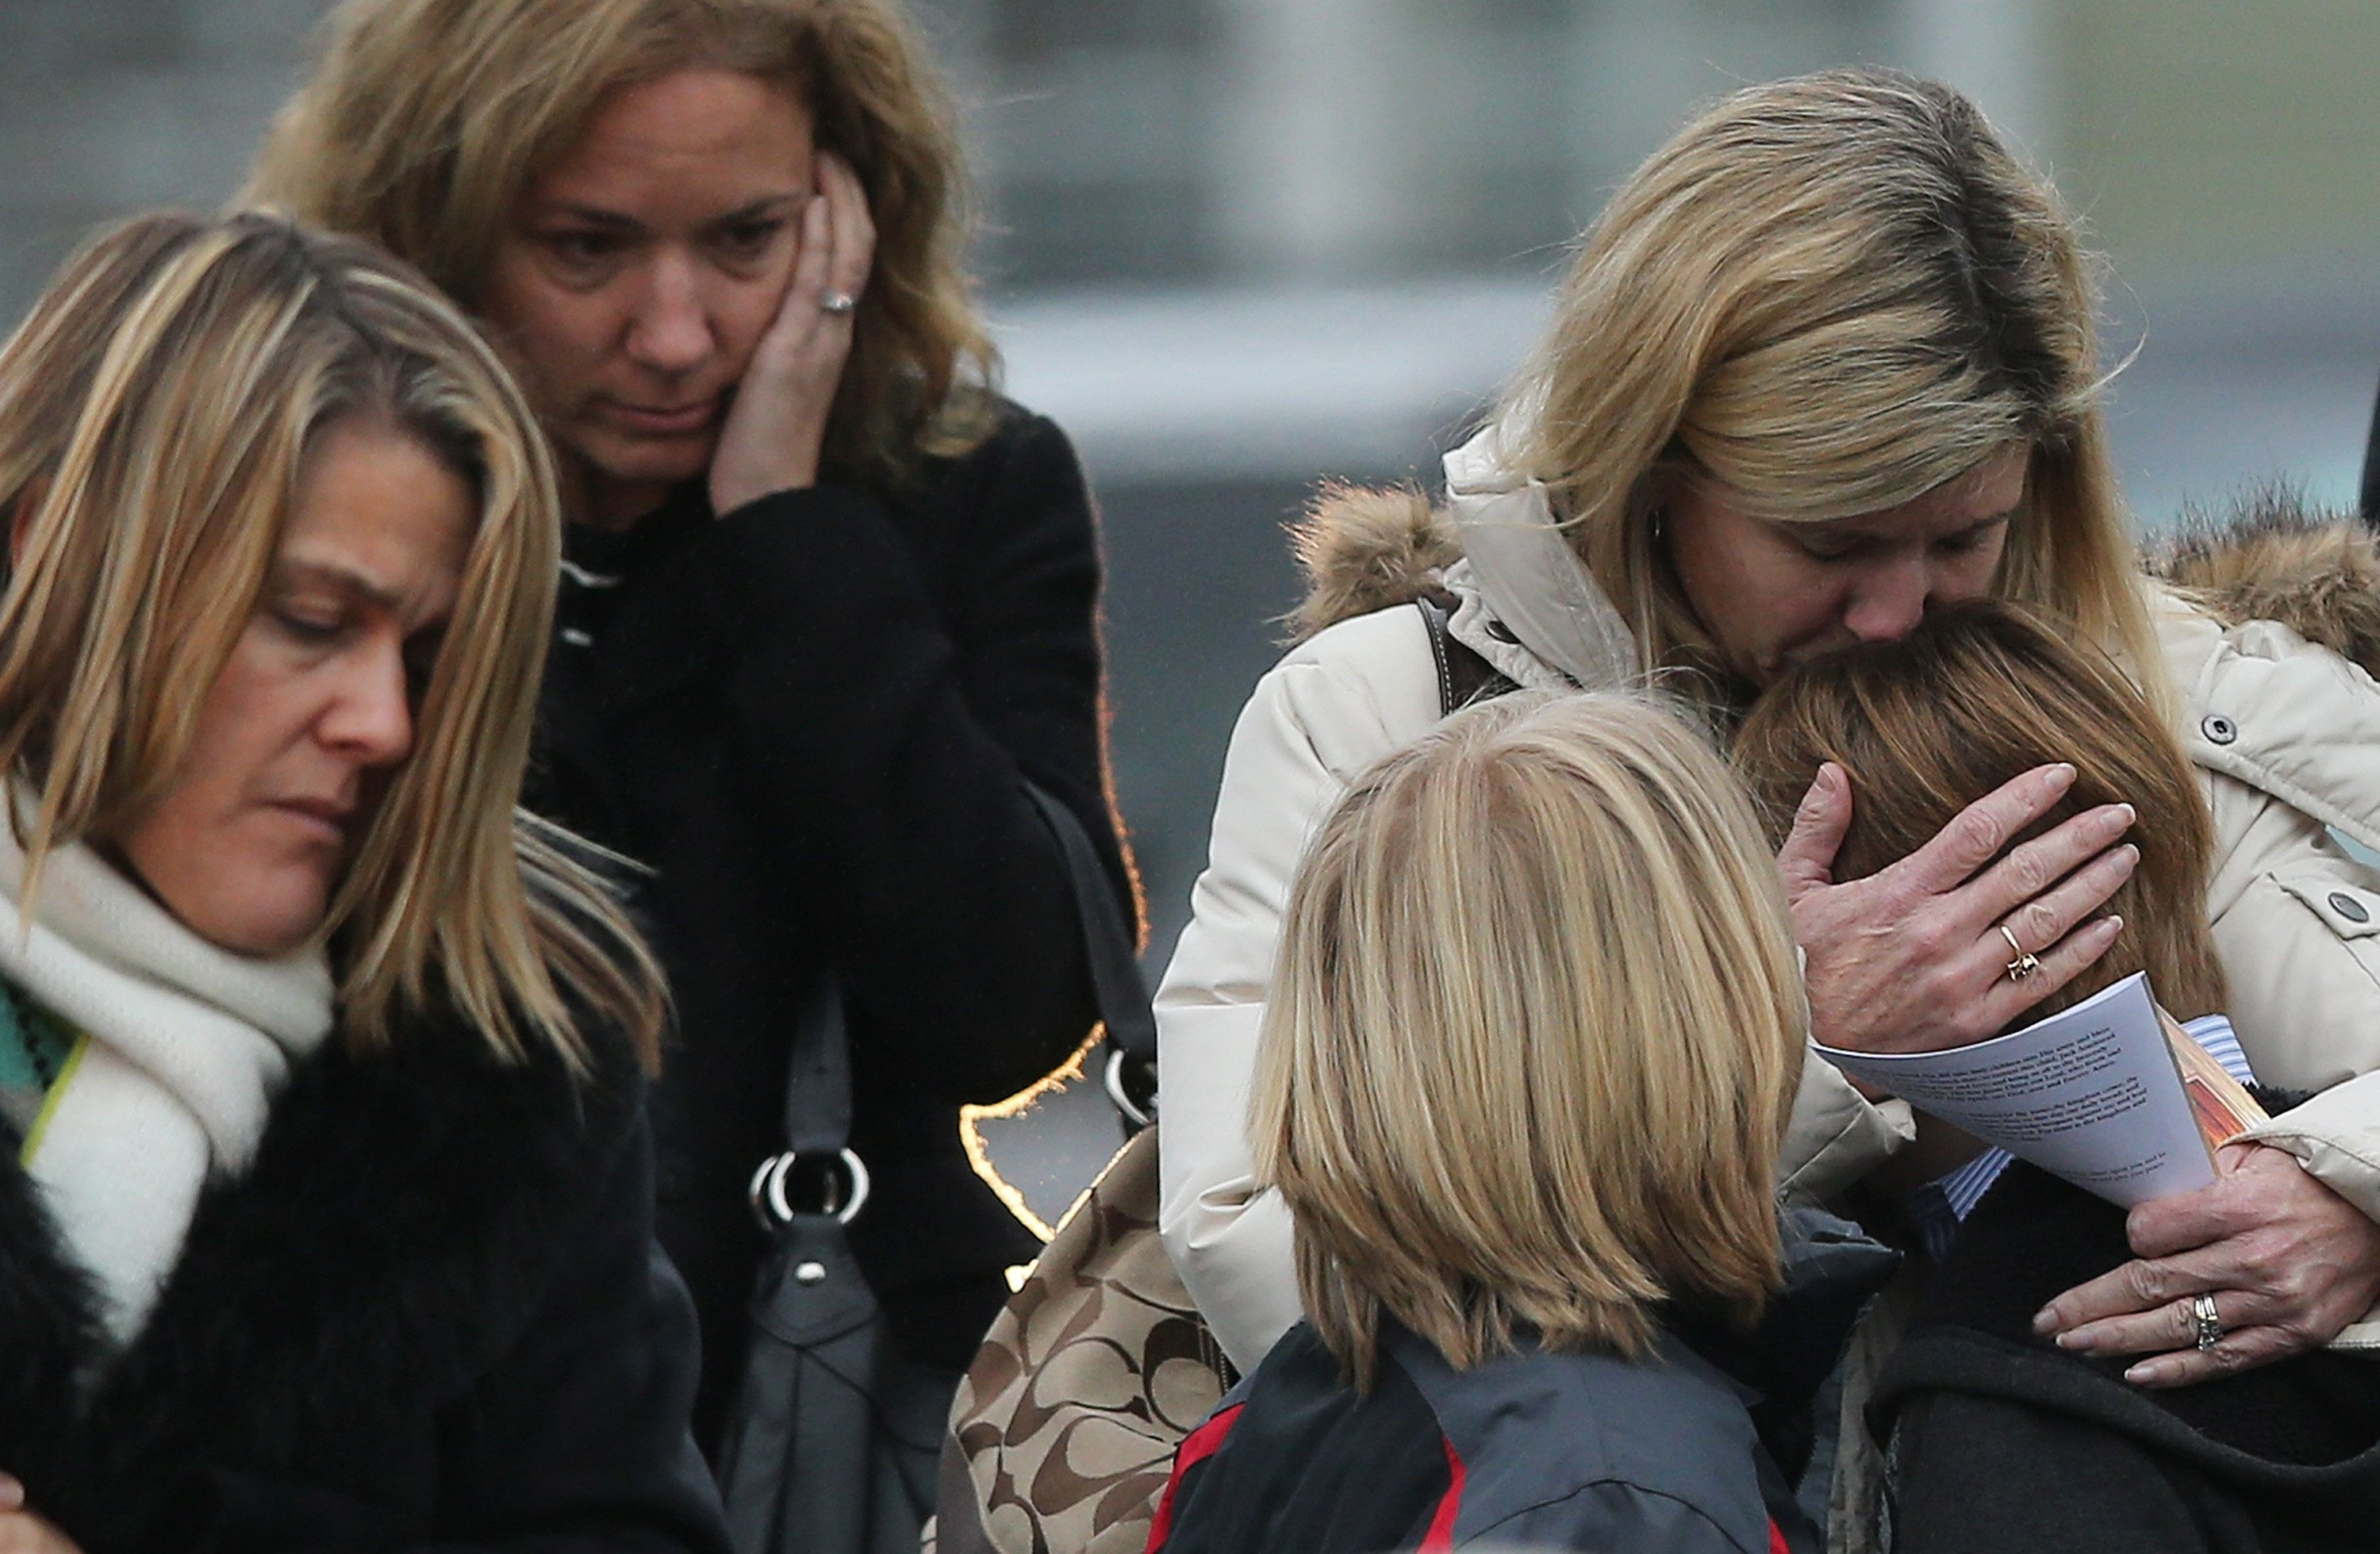 A woman comforts a boy as mourners leavethe funeral for 6-year-old Jack Pinto on Dec. 17, 2012 in Newtown, Connecticut.